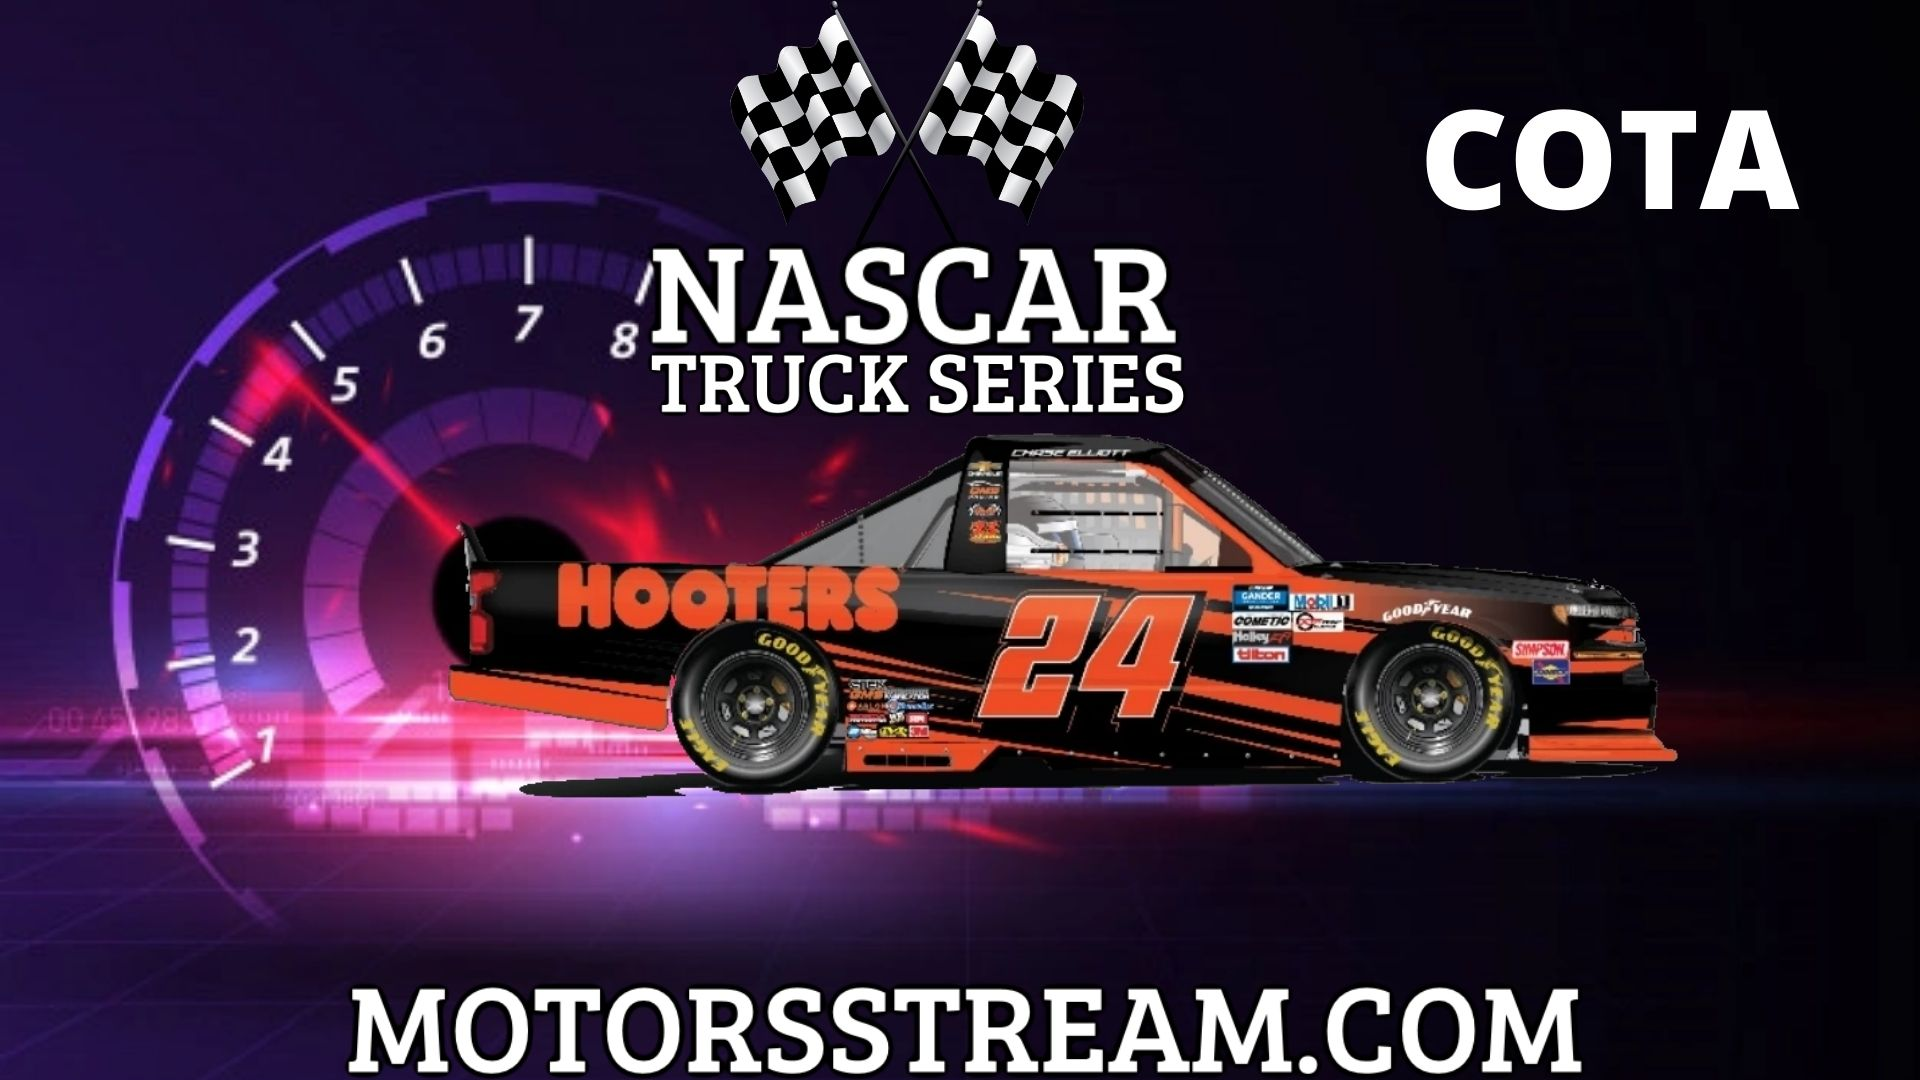 NASCAR Truck Series Race At COTA Live Stream | The Americas 2021